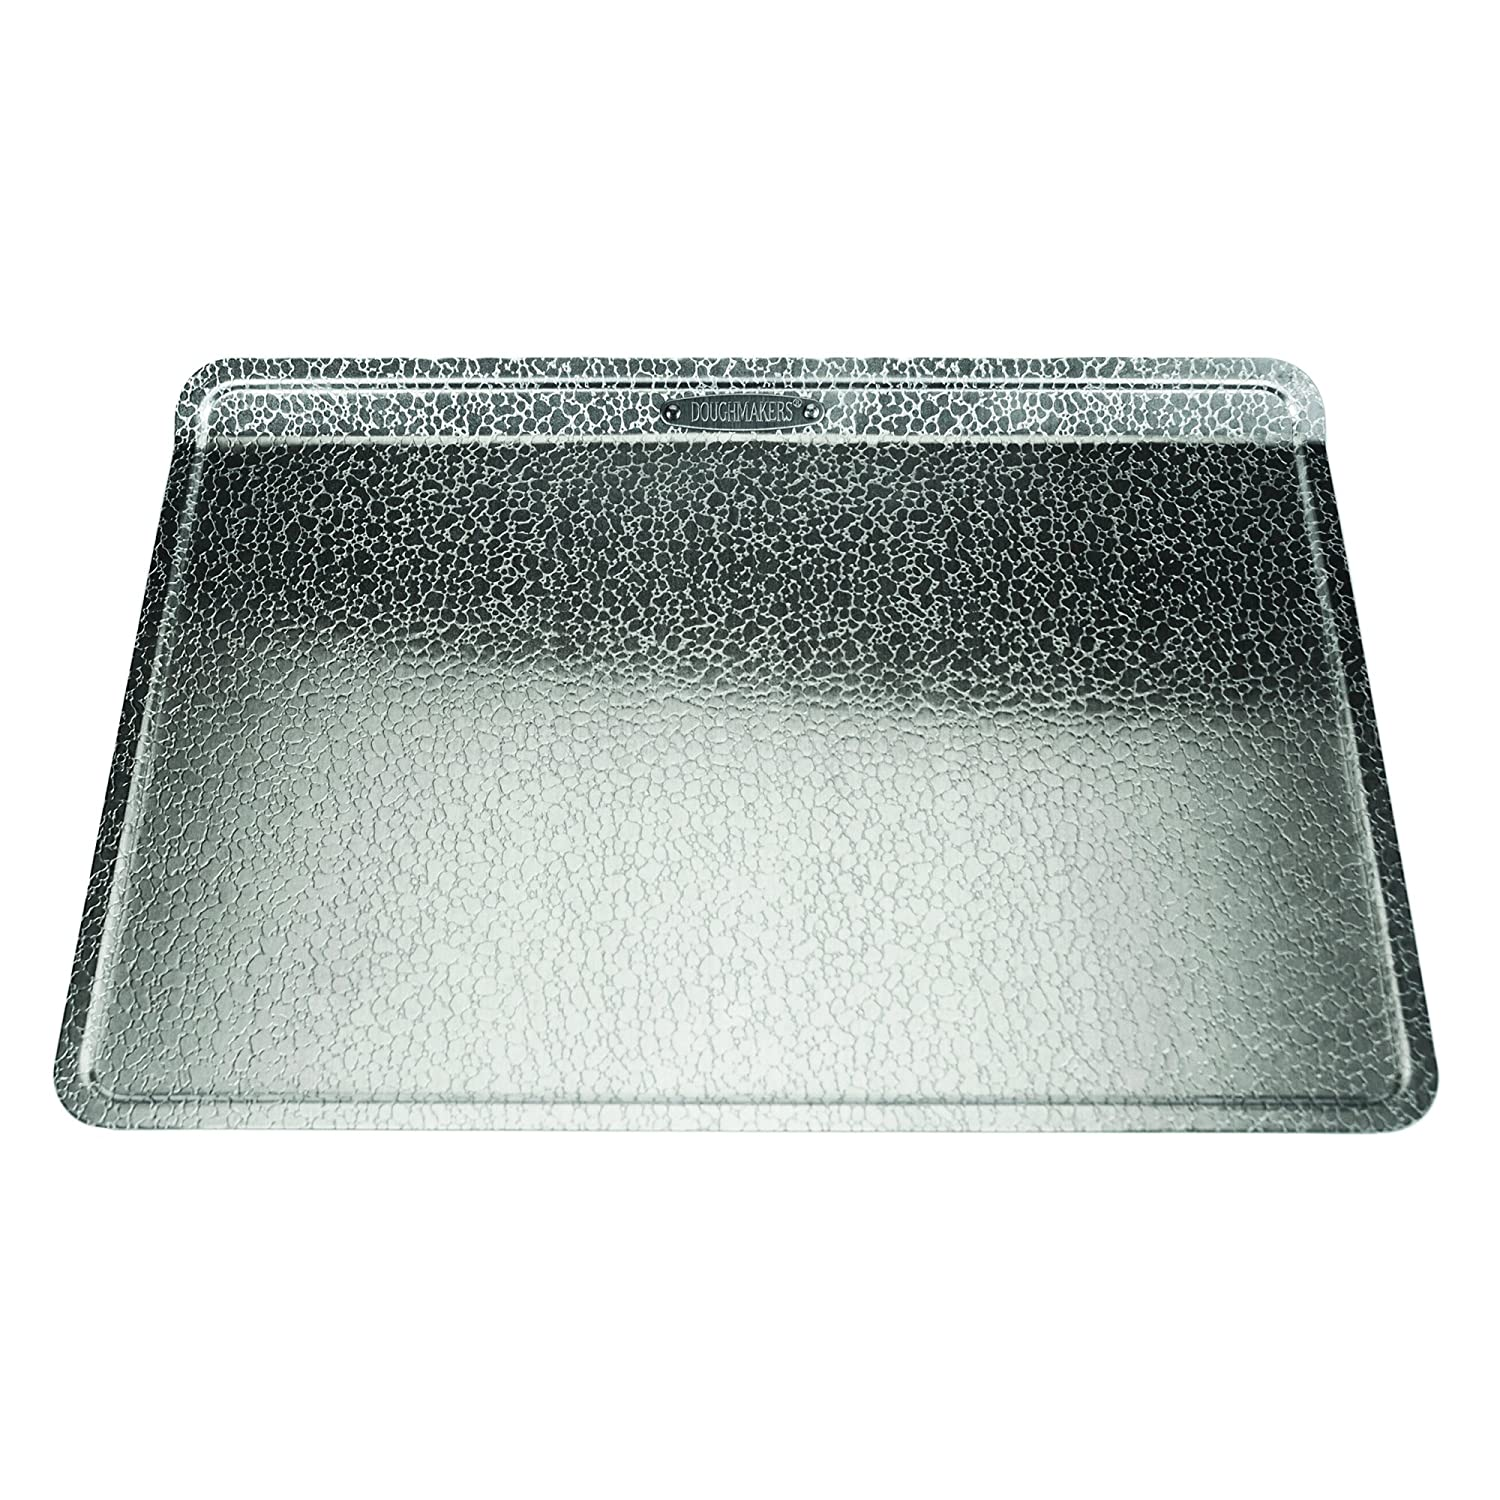 Doughmakers 10051 Grand Cookie Sheet, Aluminum Non-Stick, Original Pebble Pattern Fox Run